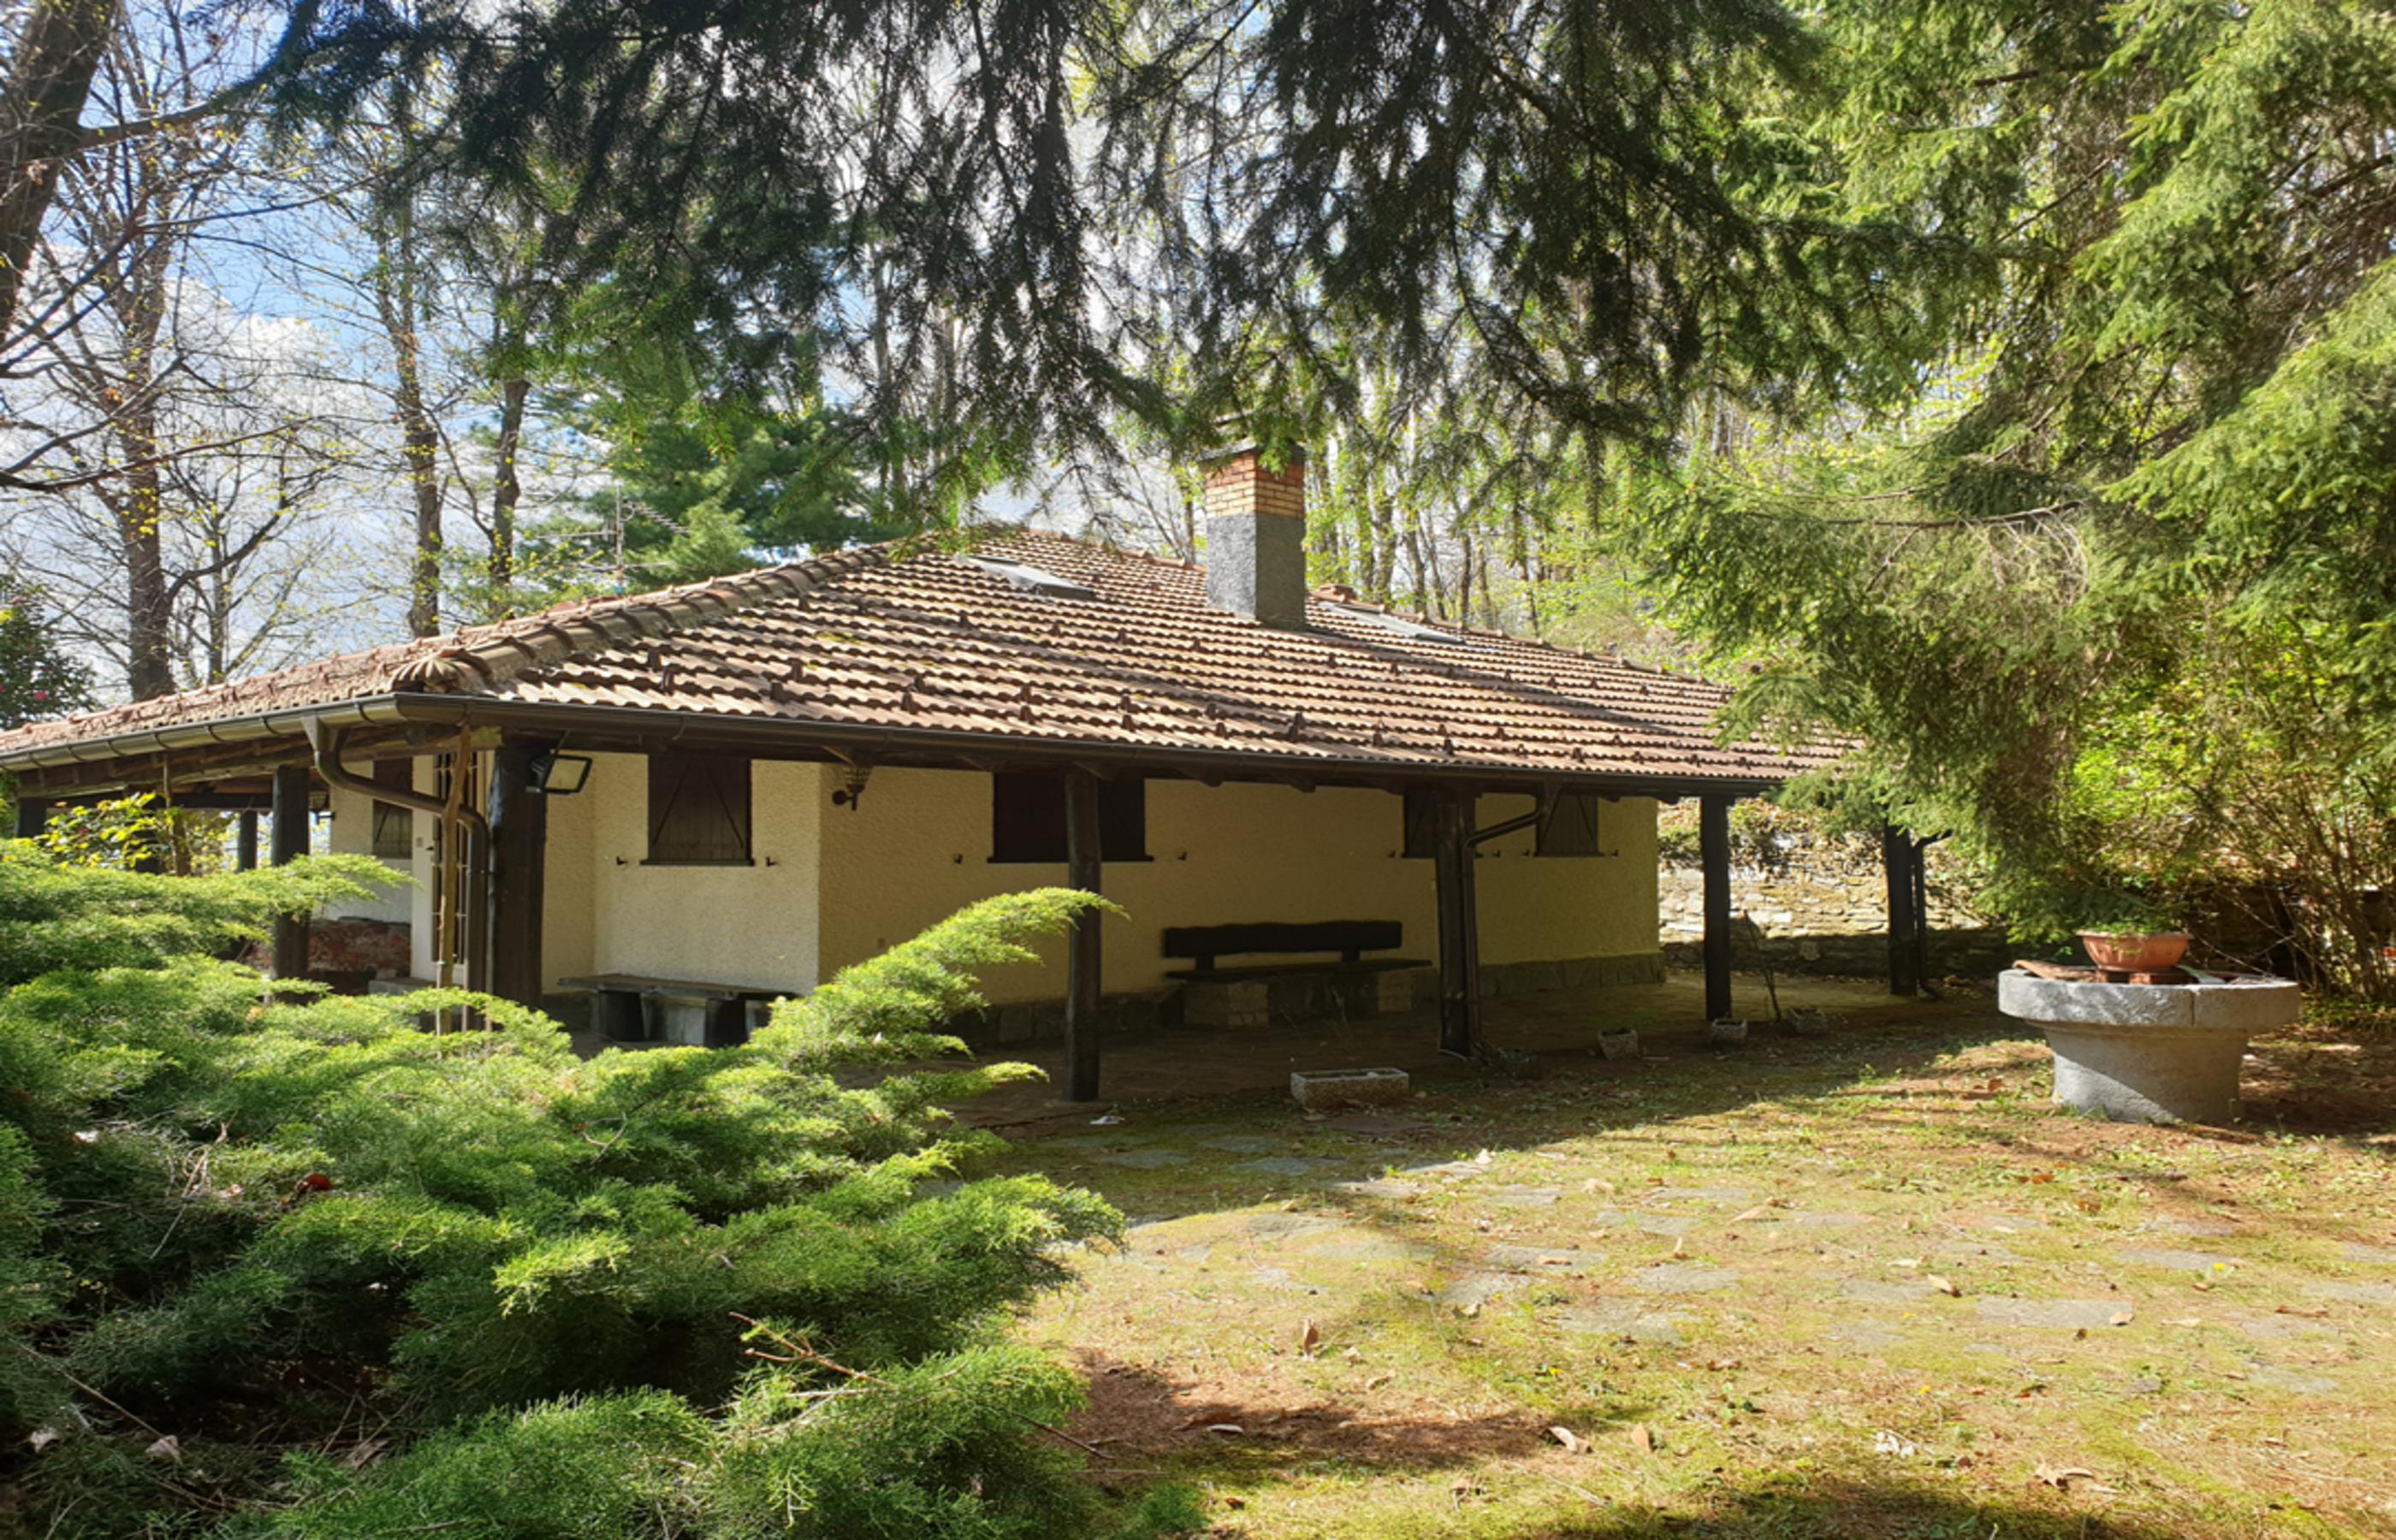 ARMENO – Chalet in the green with lake view